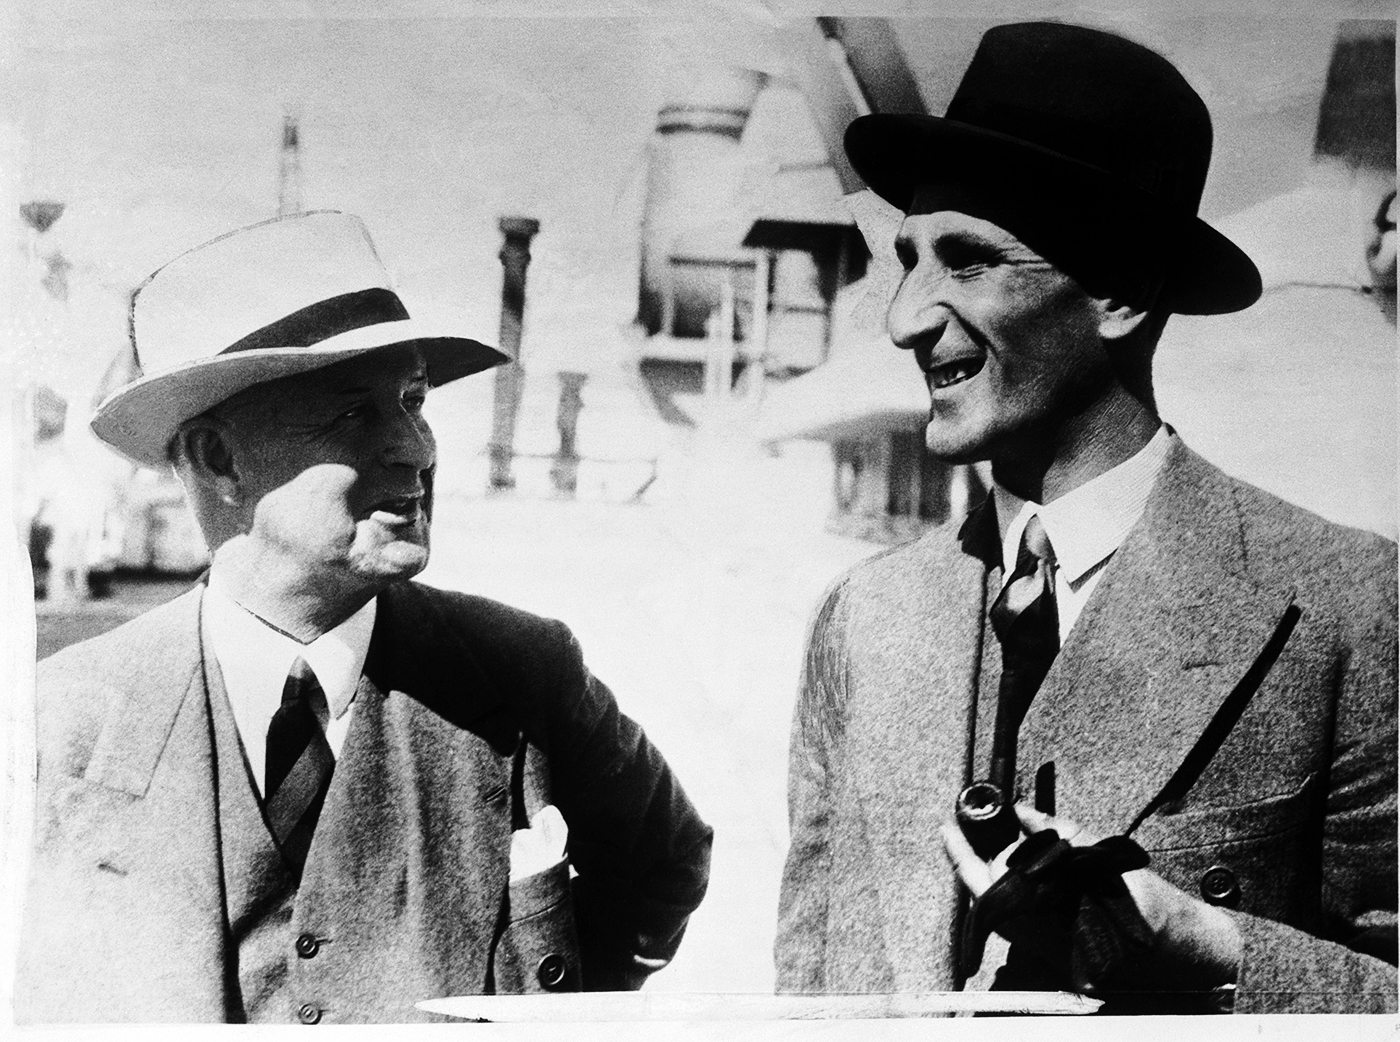 Pelham Warner and Douglas Jardine arrive in Australia for the 1932-33 Ashes with little knowledge of how the consequences of their actions would reverberate through cricket for years to come